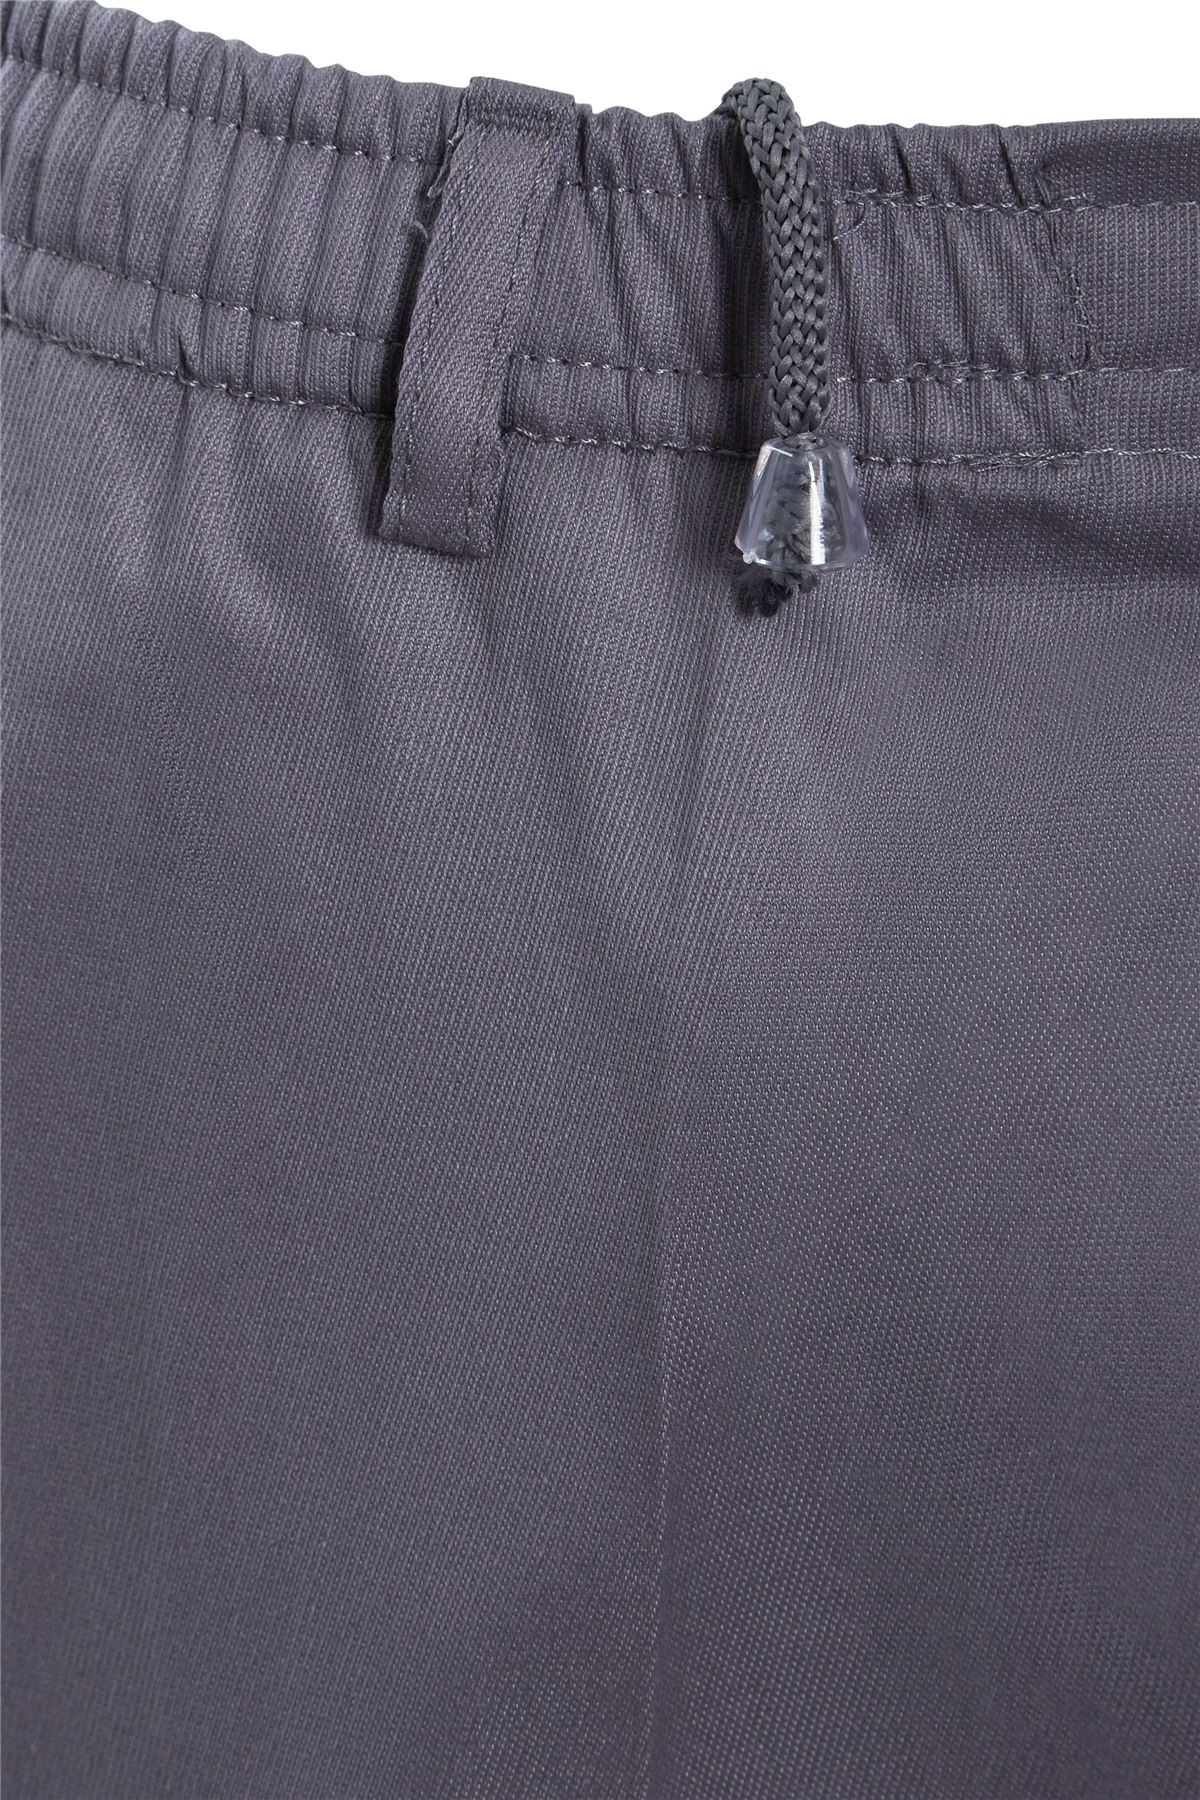 Mens Rugby Trousers Full Elasticated Stretch Waist Band With Draw Cord Workwear